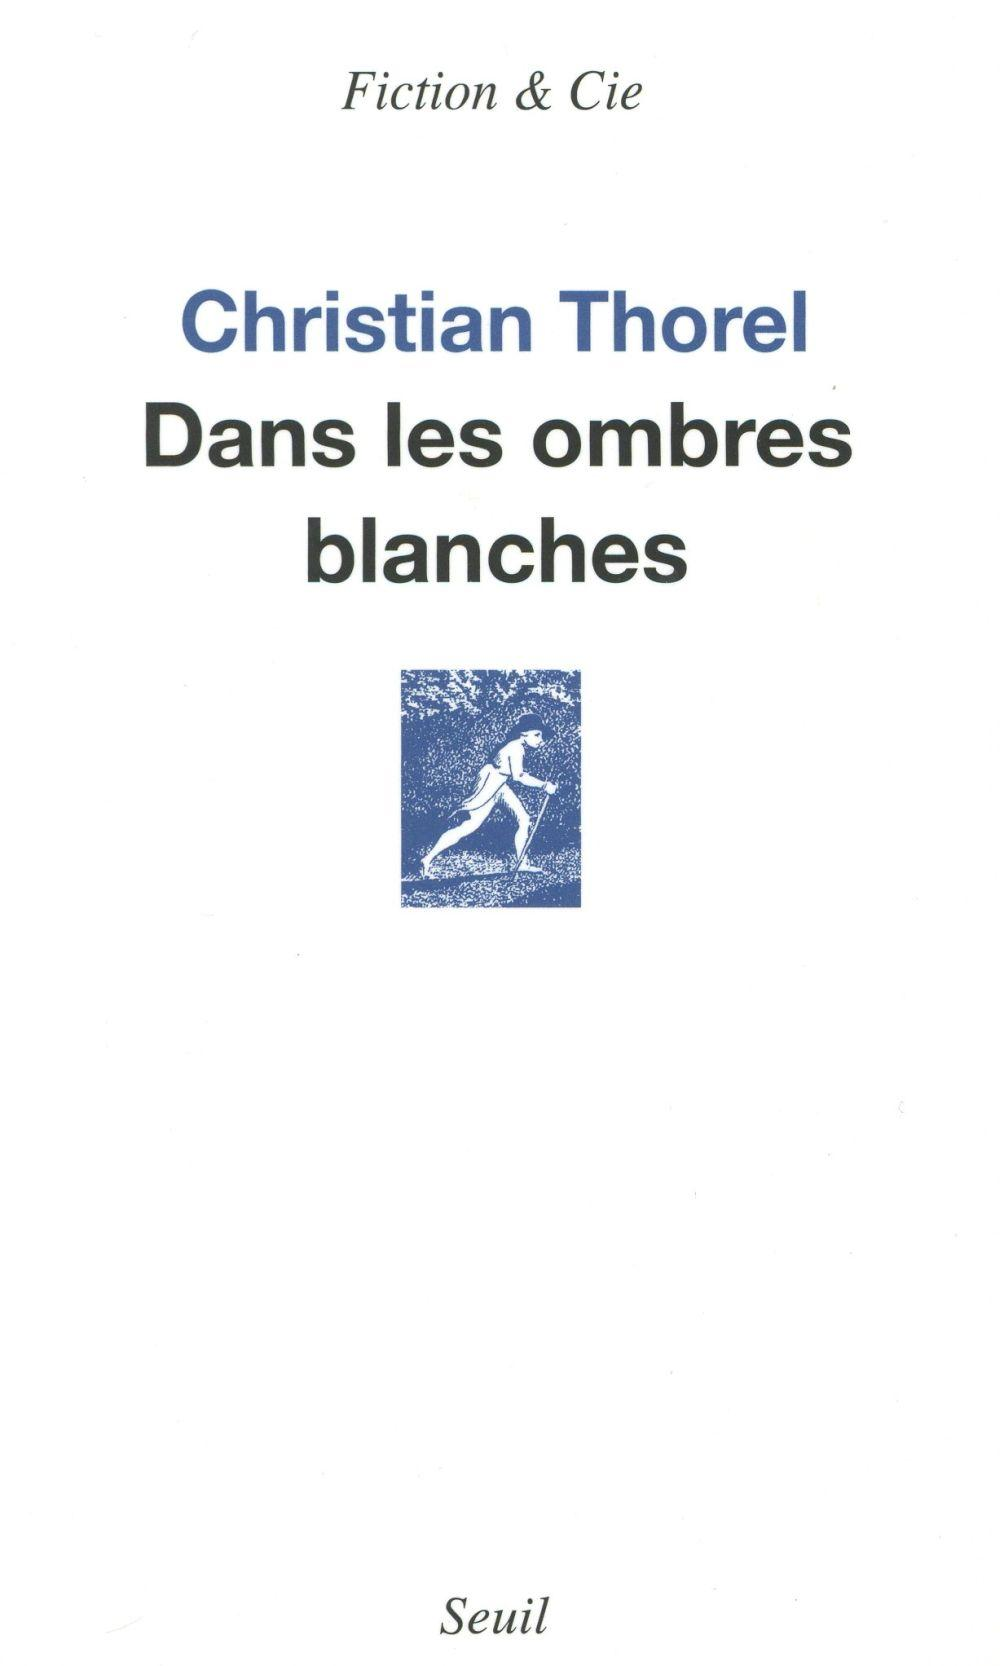 Dans les ombres blanches  - Christian Thorel